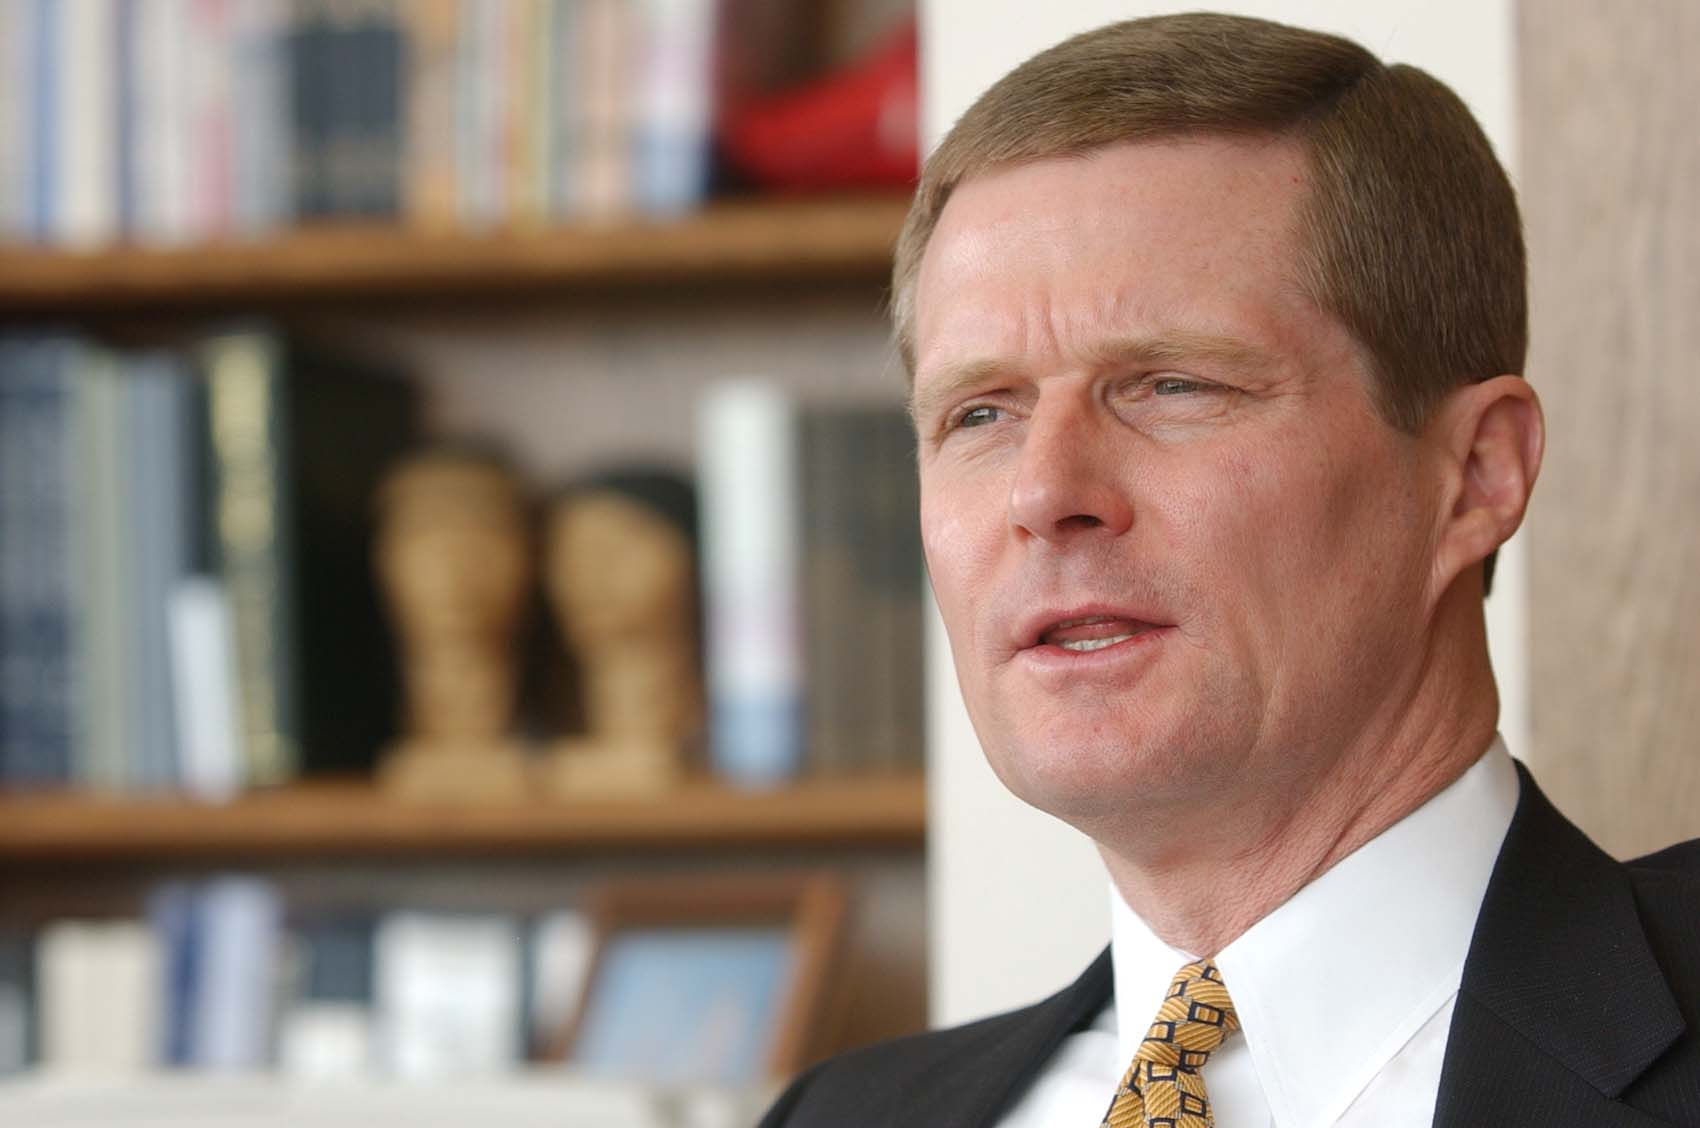 BYU-Idaho President Bednar talks about the changes that have taken place at the BYU-Idaho campus. He was president of the university from 1997 until his October 2004 call to the Quorum of the Twelve Apostles.